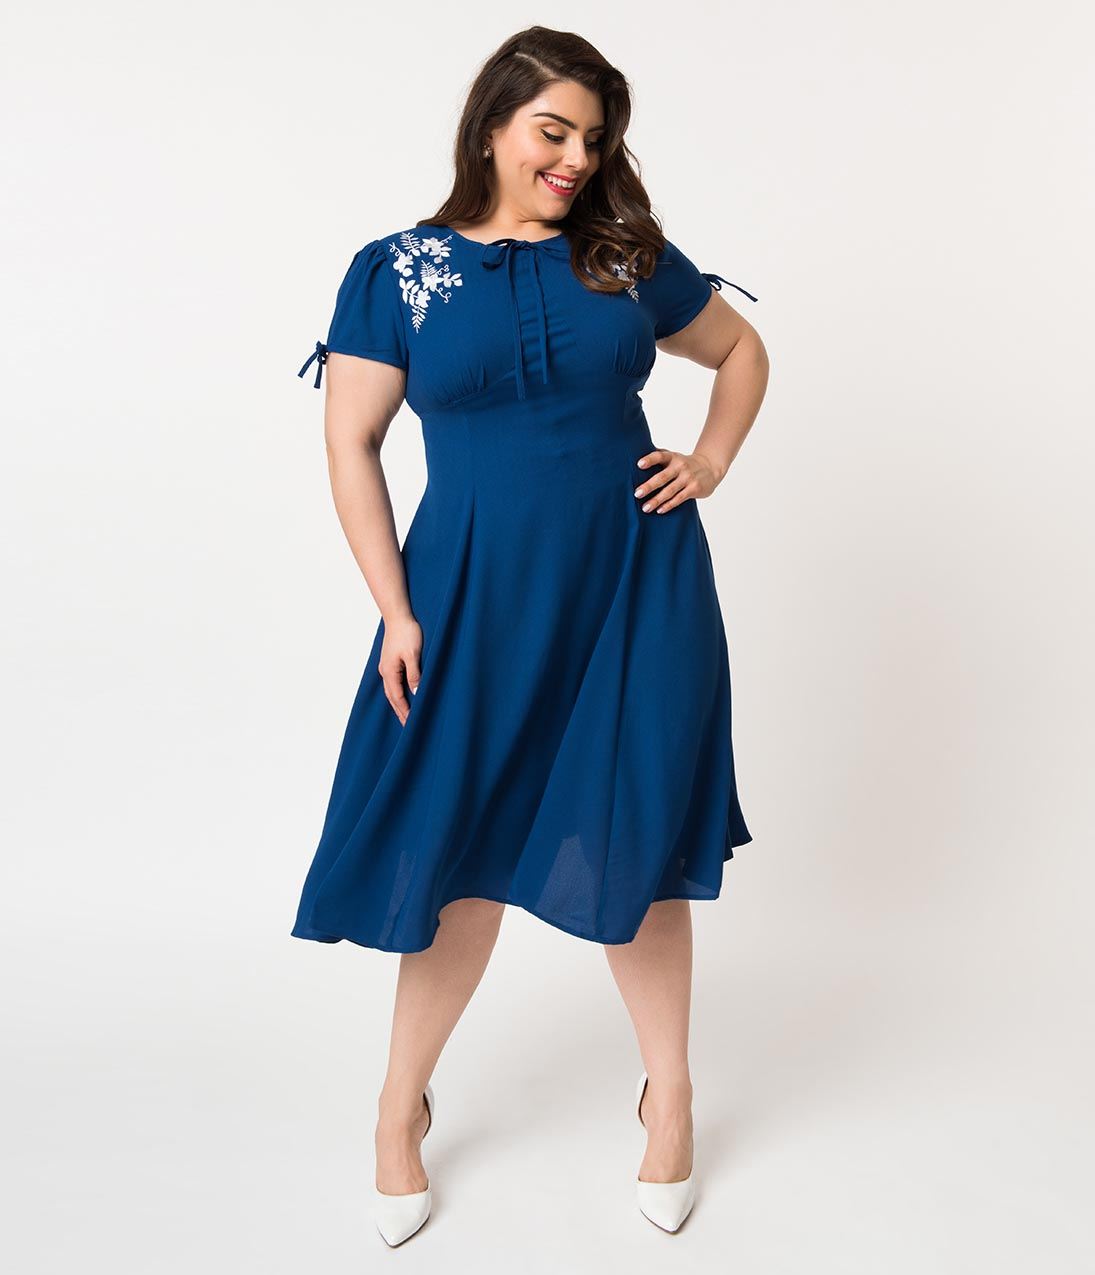 Swing Dance Clothing You Can Dance In Plus Size 1940S Style Royal Blue Crepe  White Embroidered Floral Ava Swing Dress $78.00 AT vintagedancer.com